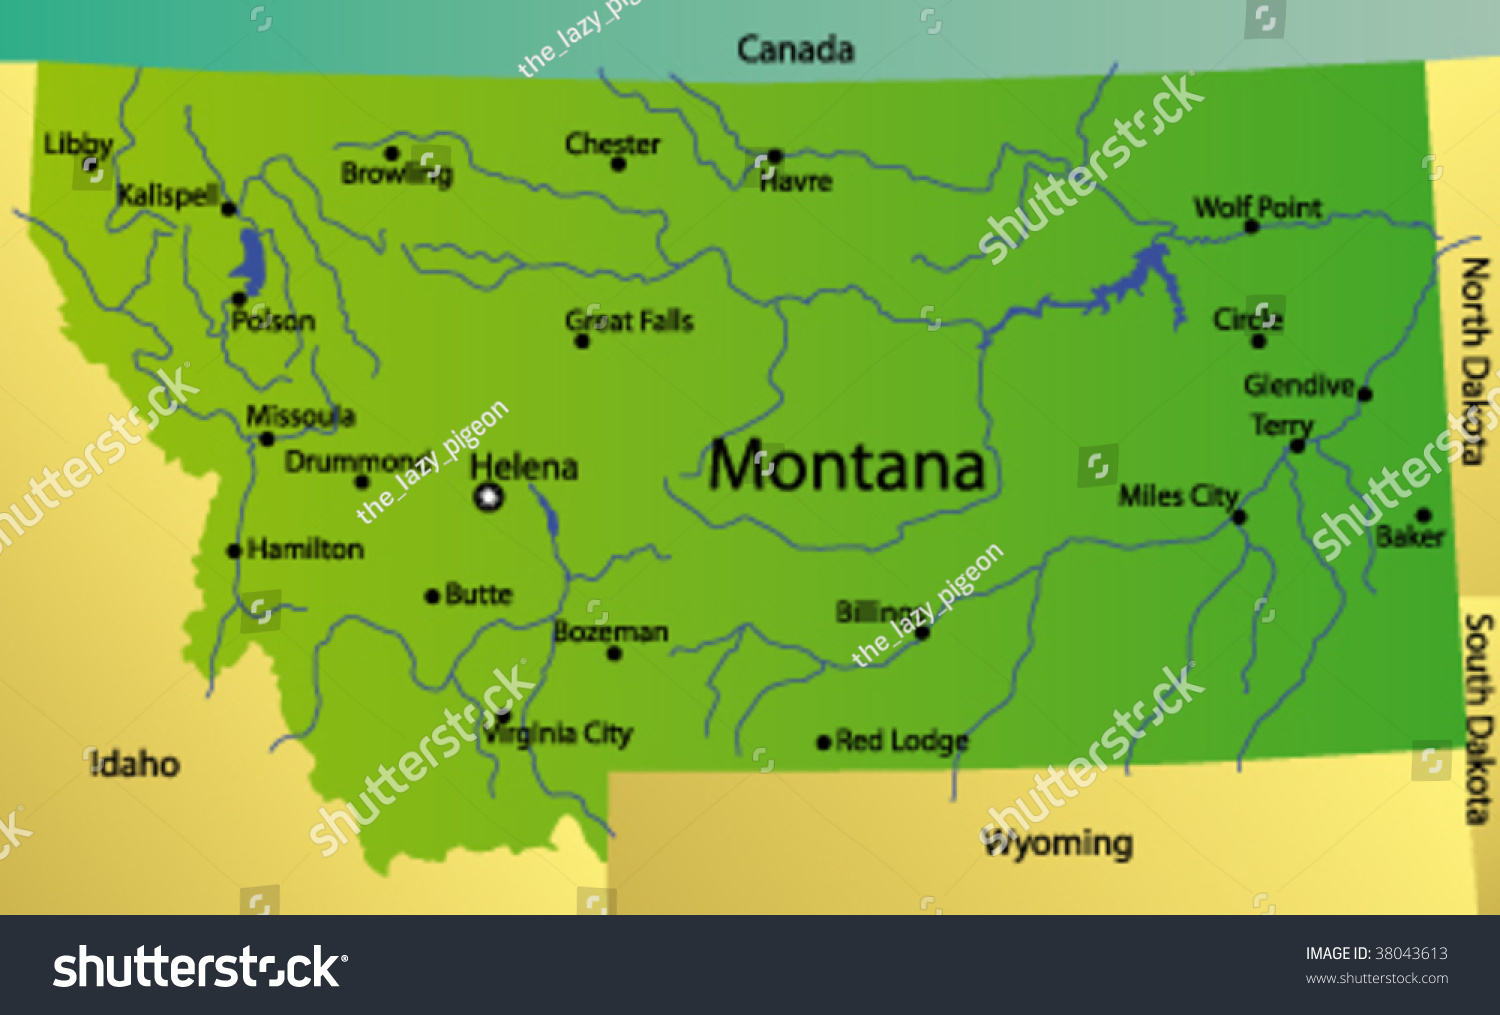 Detaild Vector Map Montana State Usa Stock Vector - Montana state map